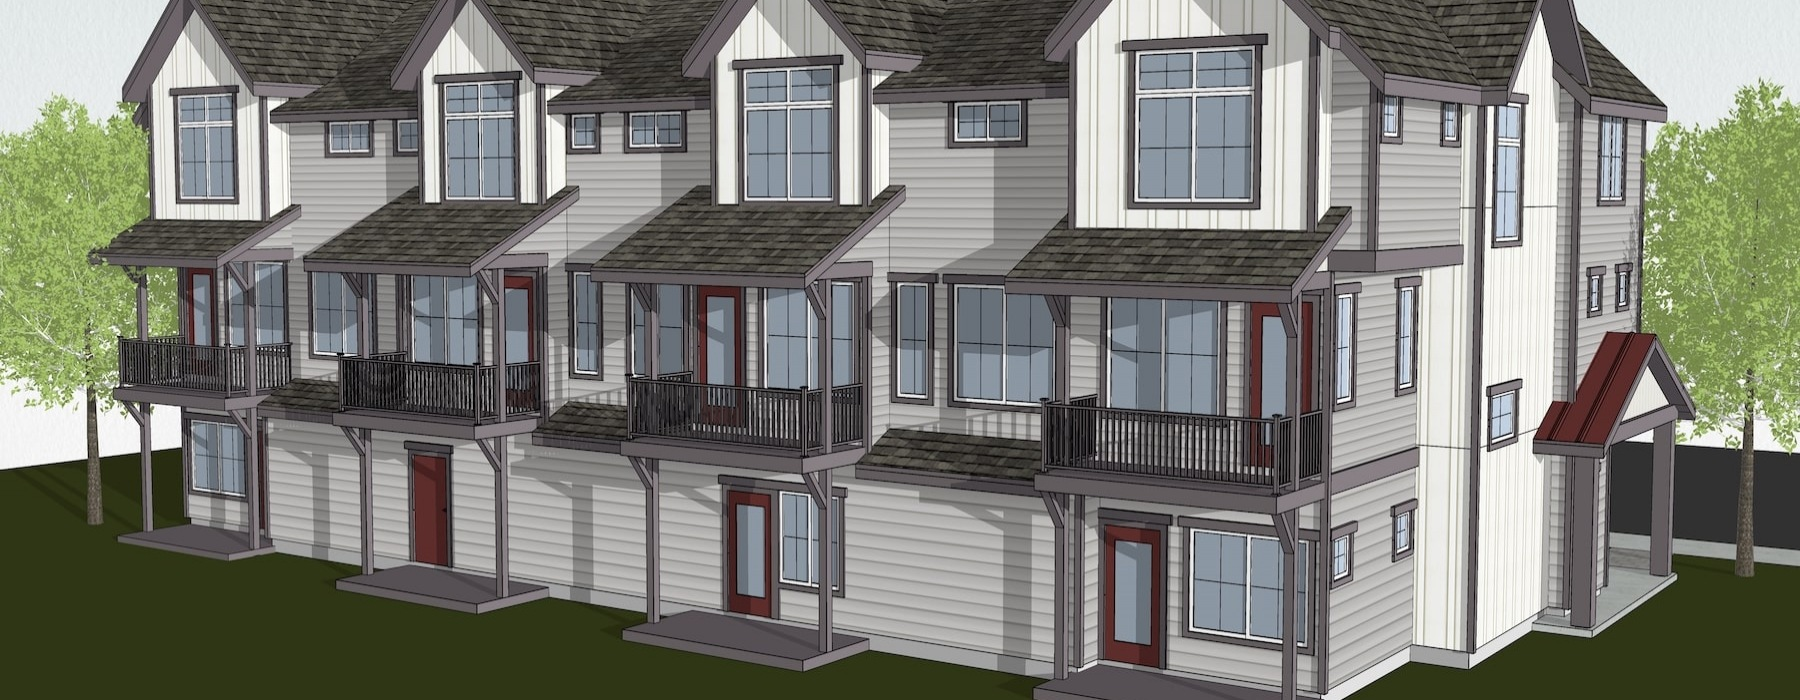 Rendering of Duvall Village Townhomes